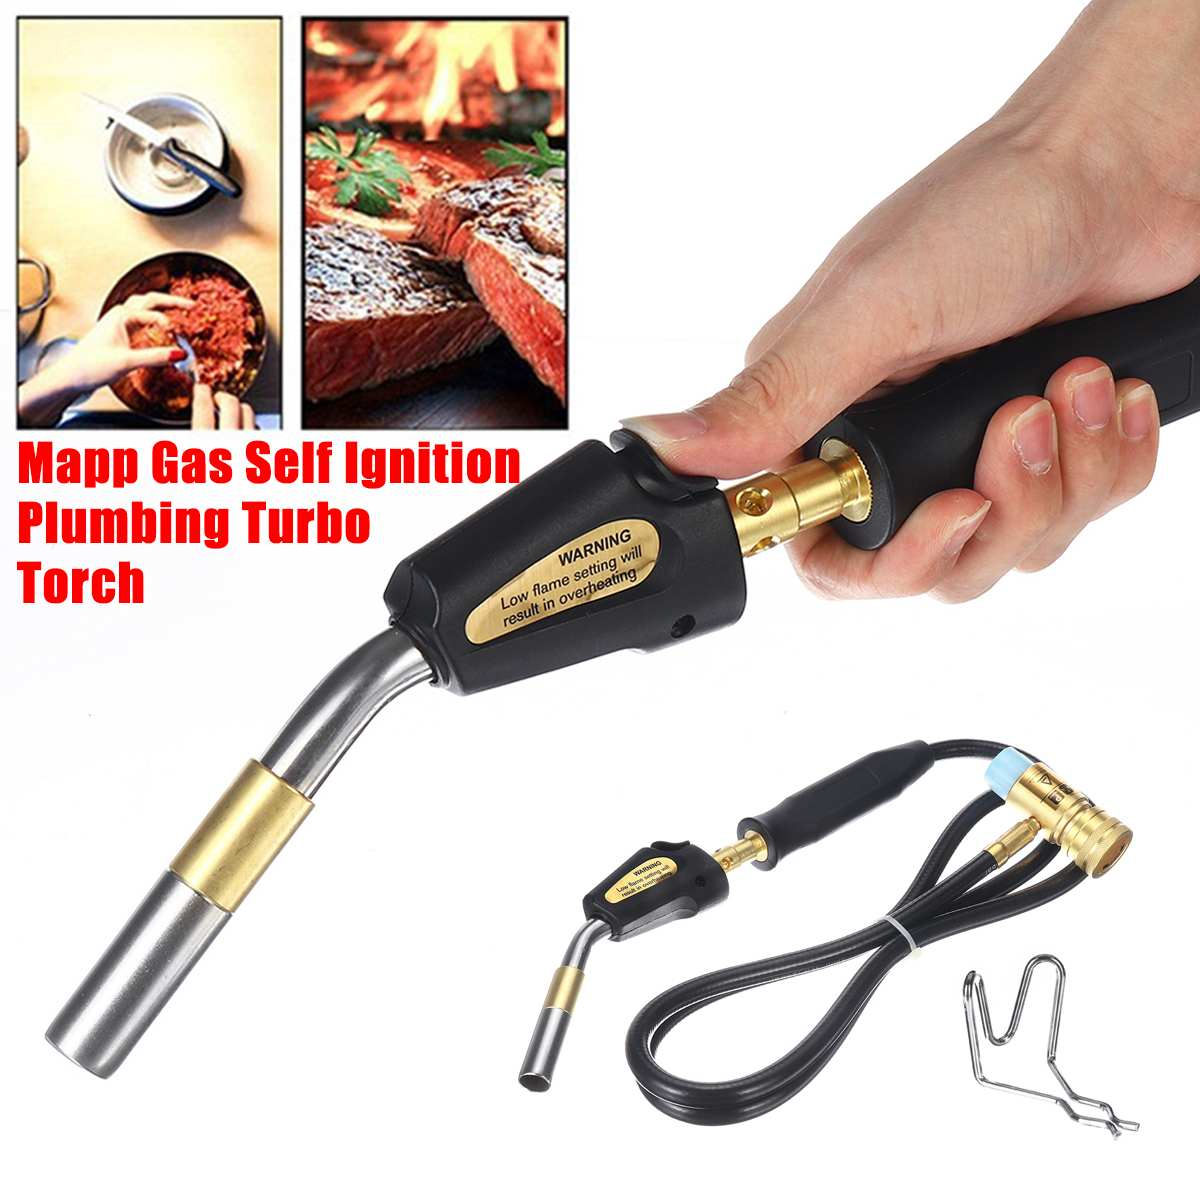 Mapp Torch Hose Gas Gas Torch Welding Plumbing Solder Liquefied Welding Propane W Kit Ignition Electronic Ignition Turbo Self